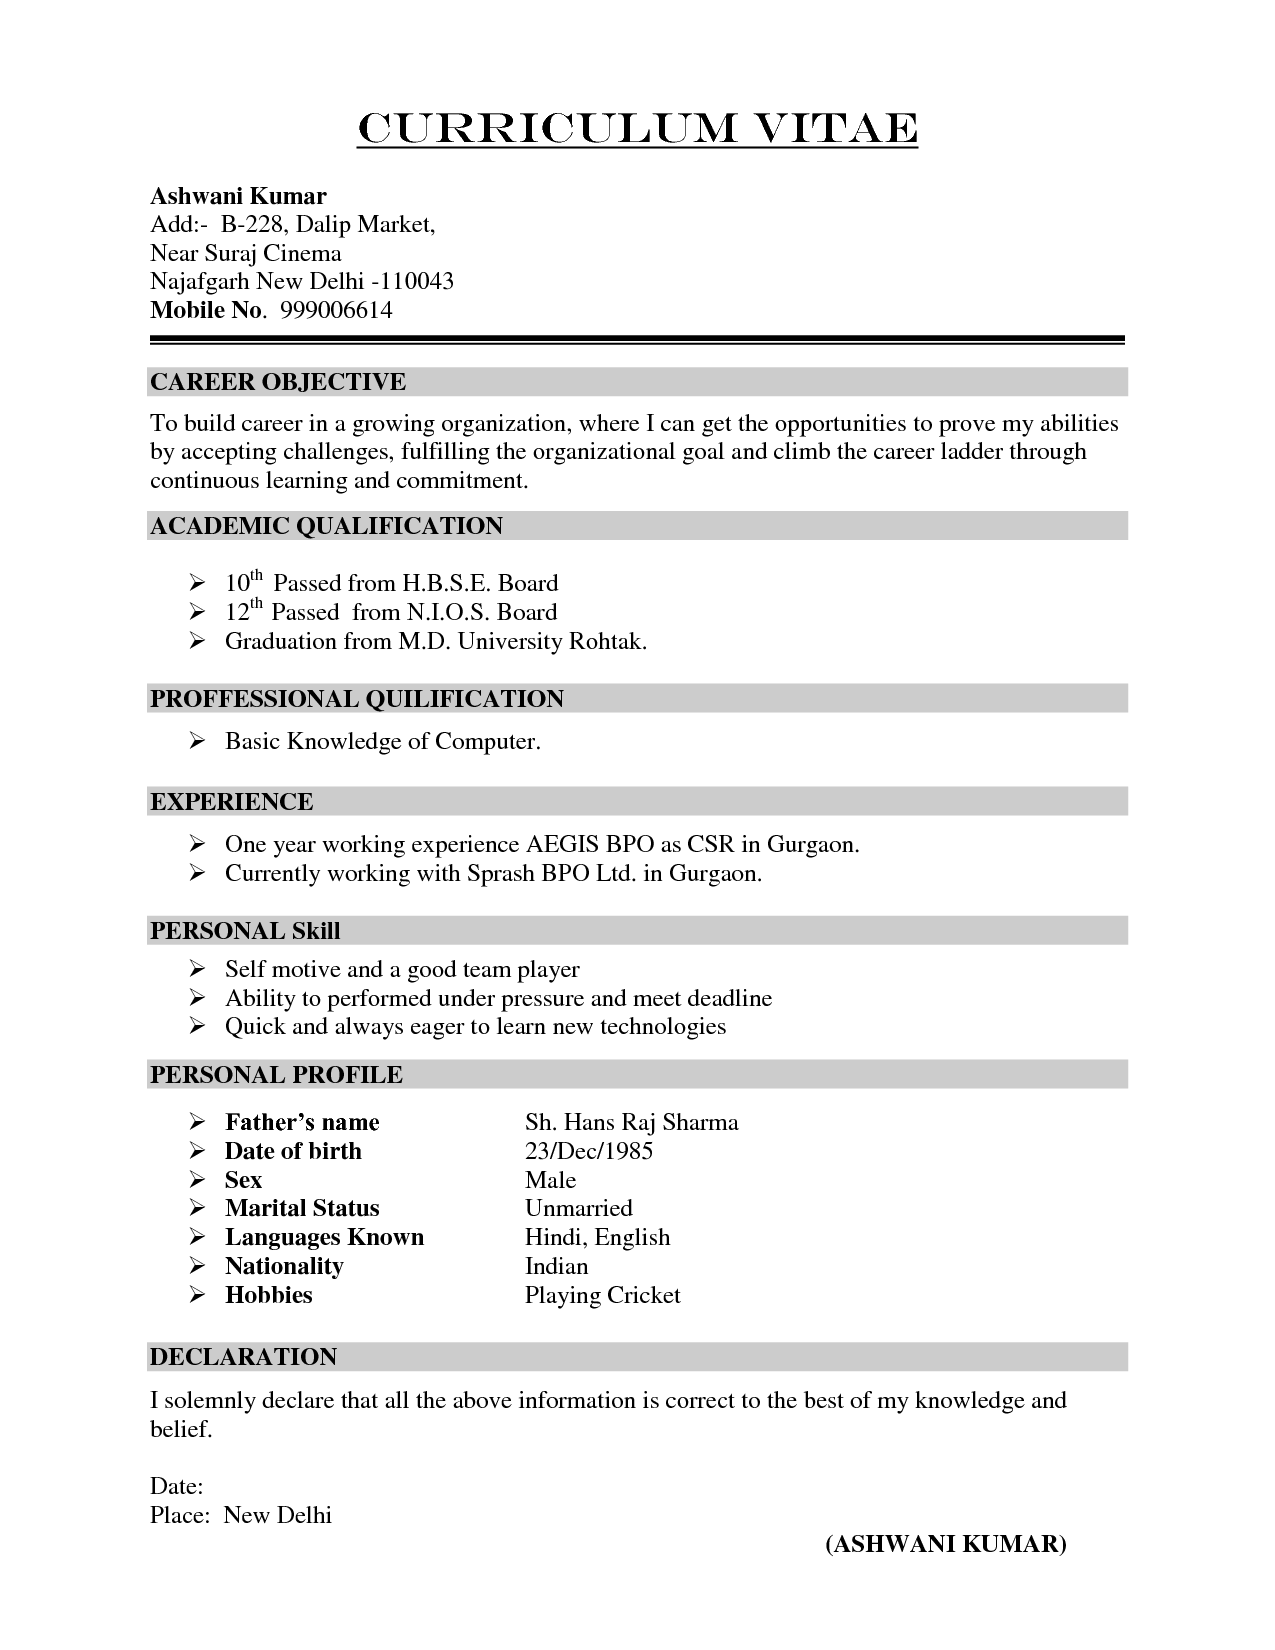 resume and cv samples tk category curriculum vitae